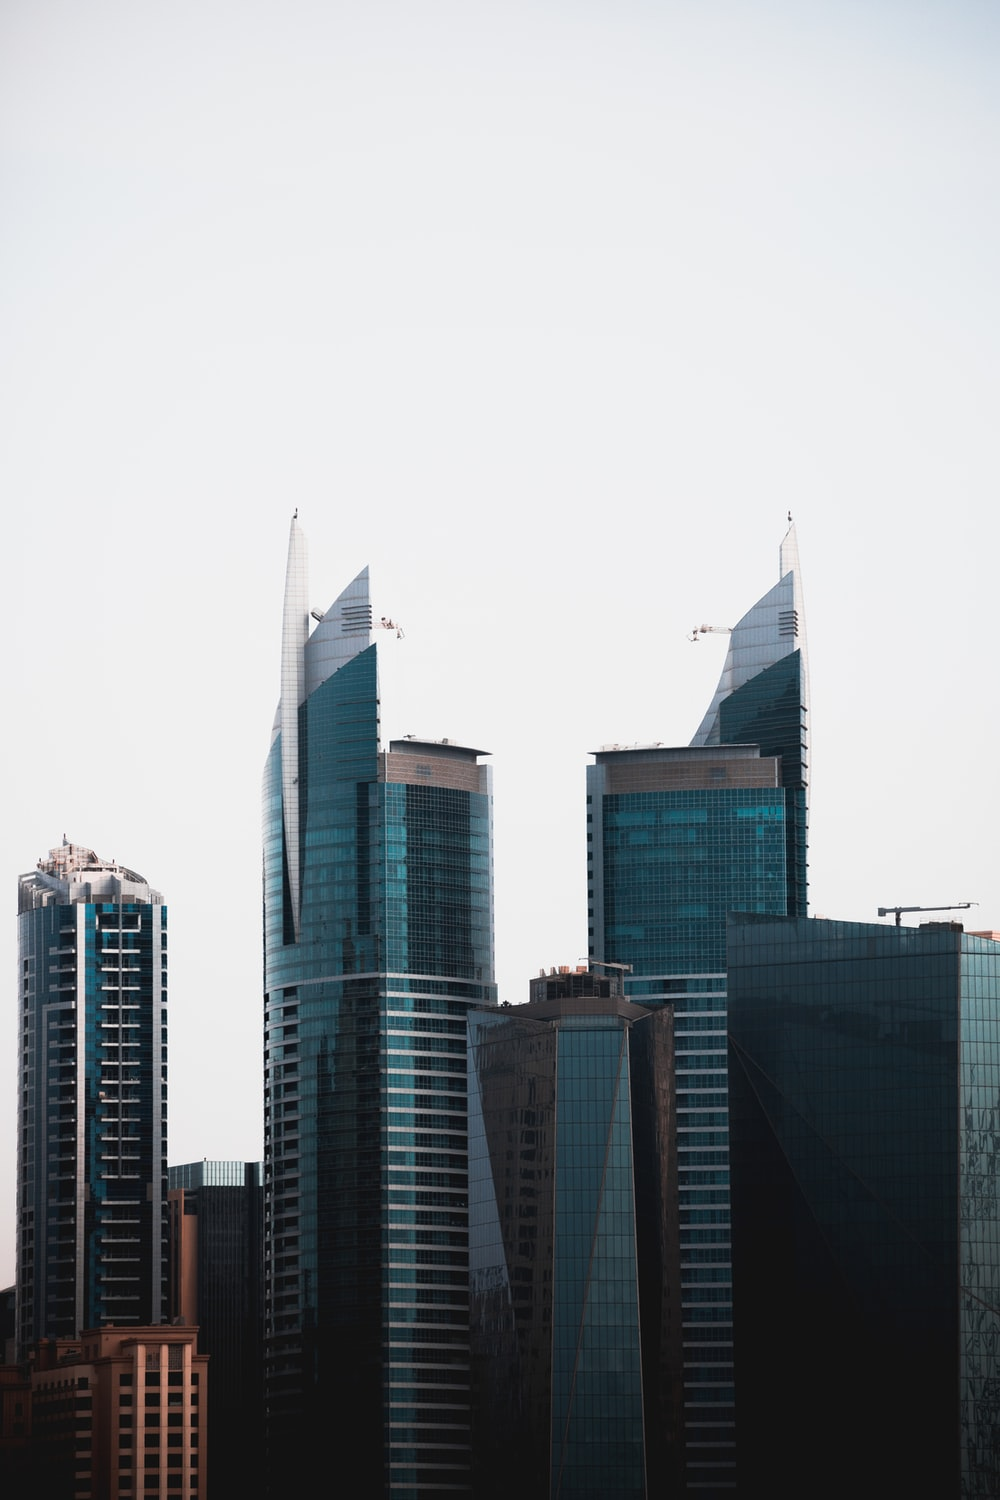 buildings during daytime